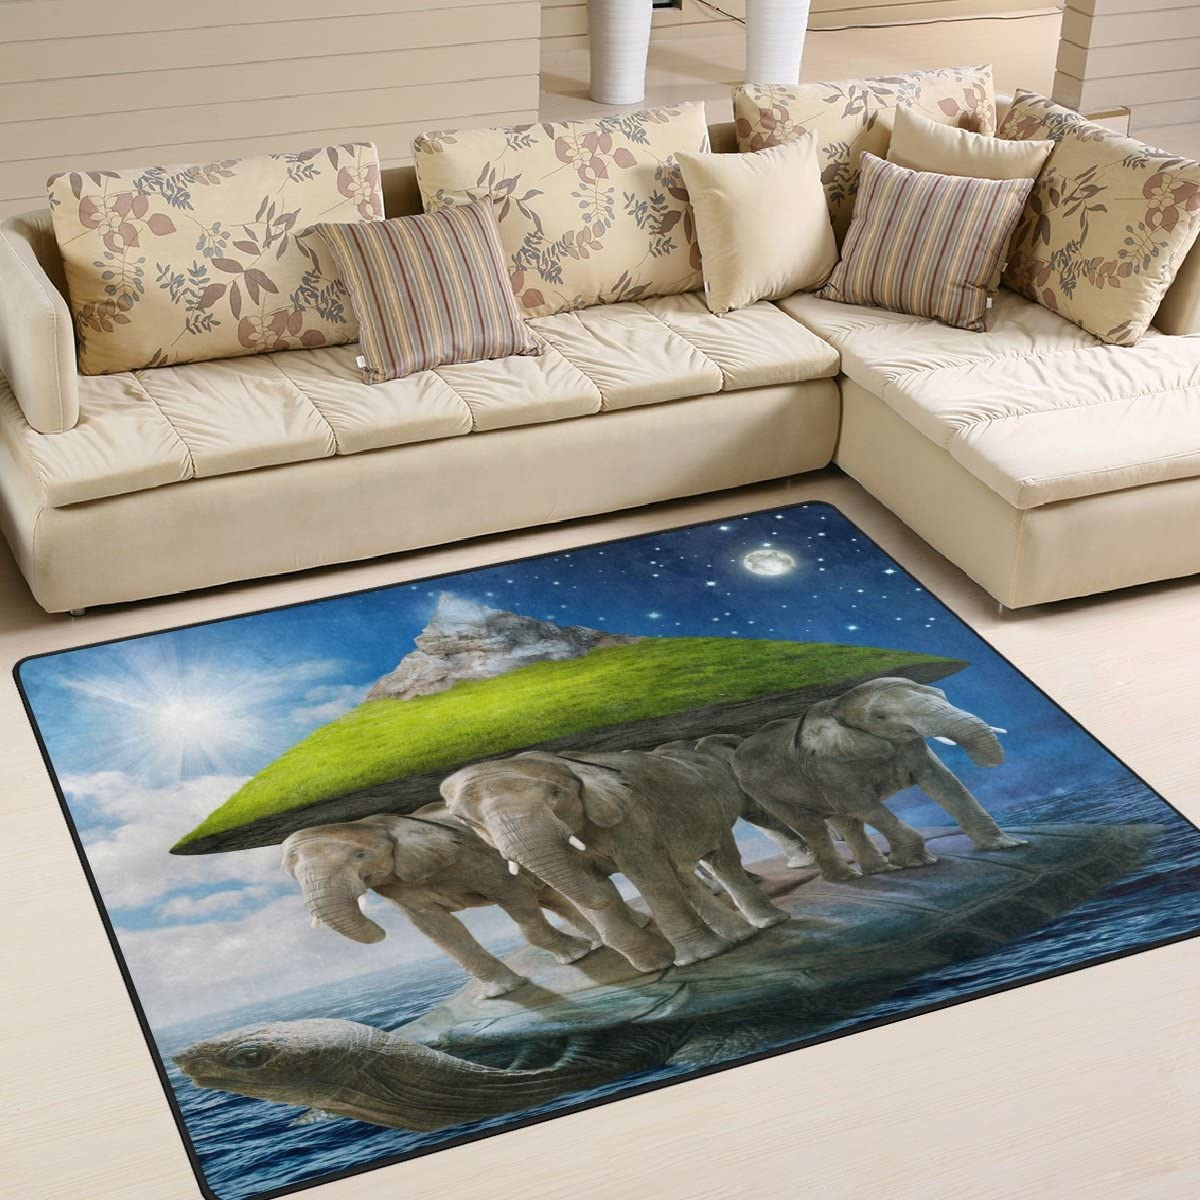 ALAZA Fantasy Sea Turtle Carrying The Elephant Moon Area Rug Rugs for Living Room Bedroom 7 x 5